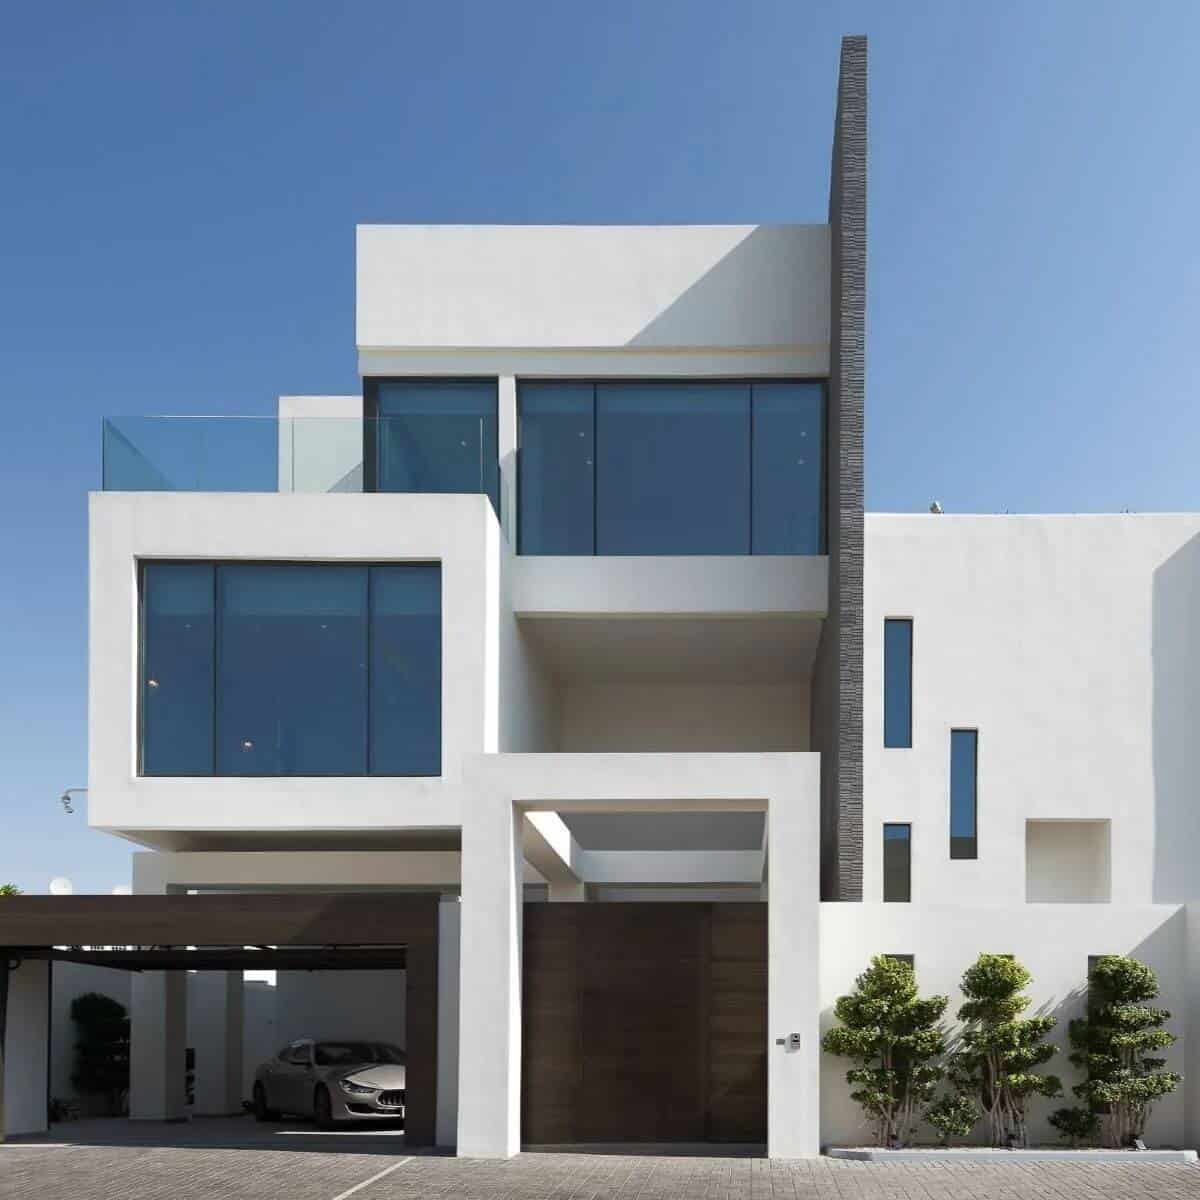 3-story white modern mansion with floor-to-ceiling windows and a car in the garage.